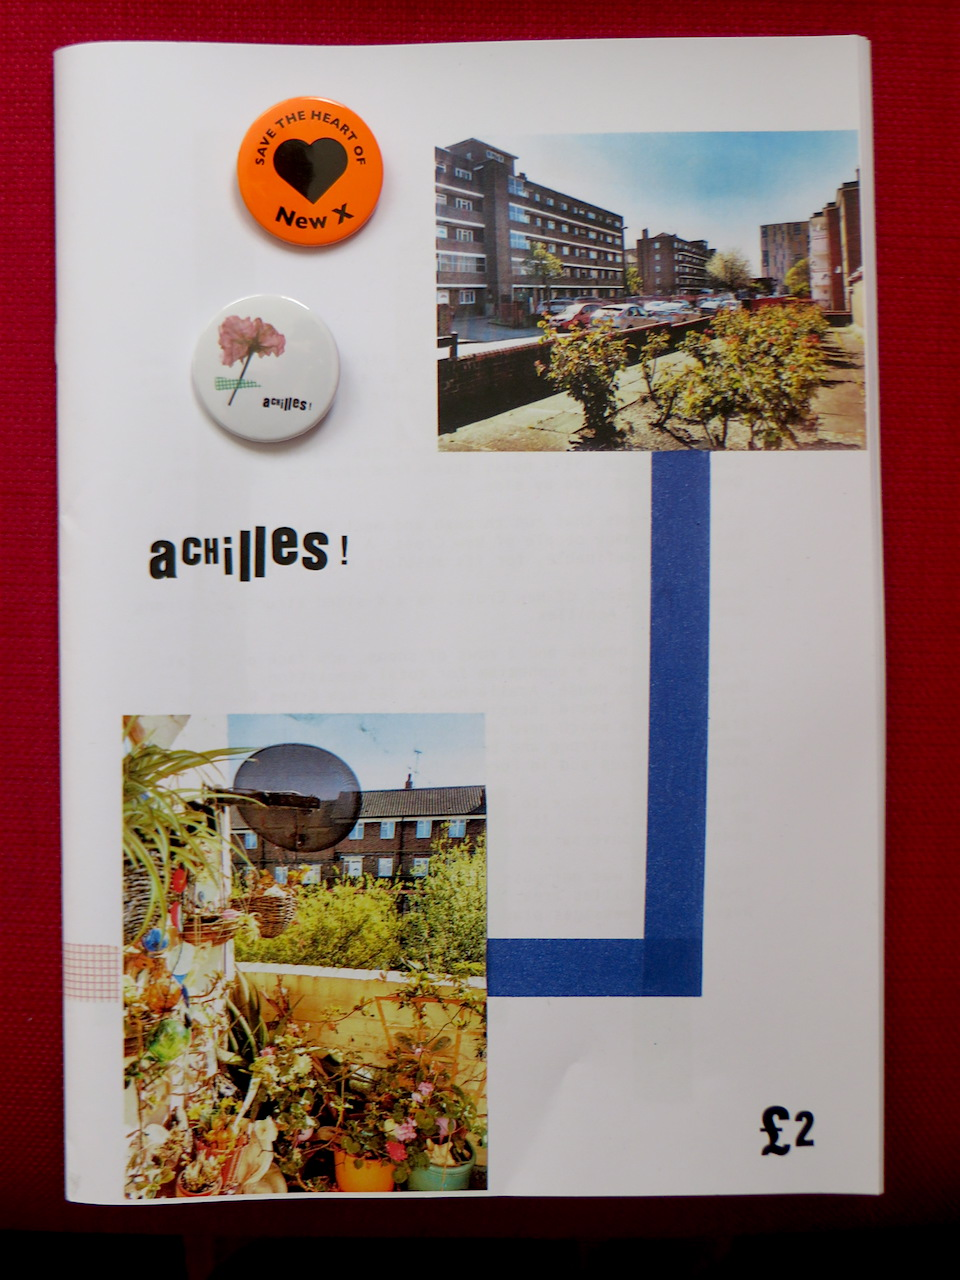 The Achilles fanzine, put together by resident Lilah Francis, from the area threatened with demolition by Lewisham Council, and some campaign badges (Photo: Andy Worthington).